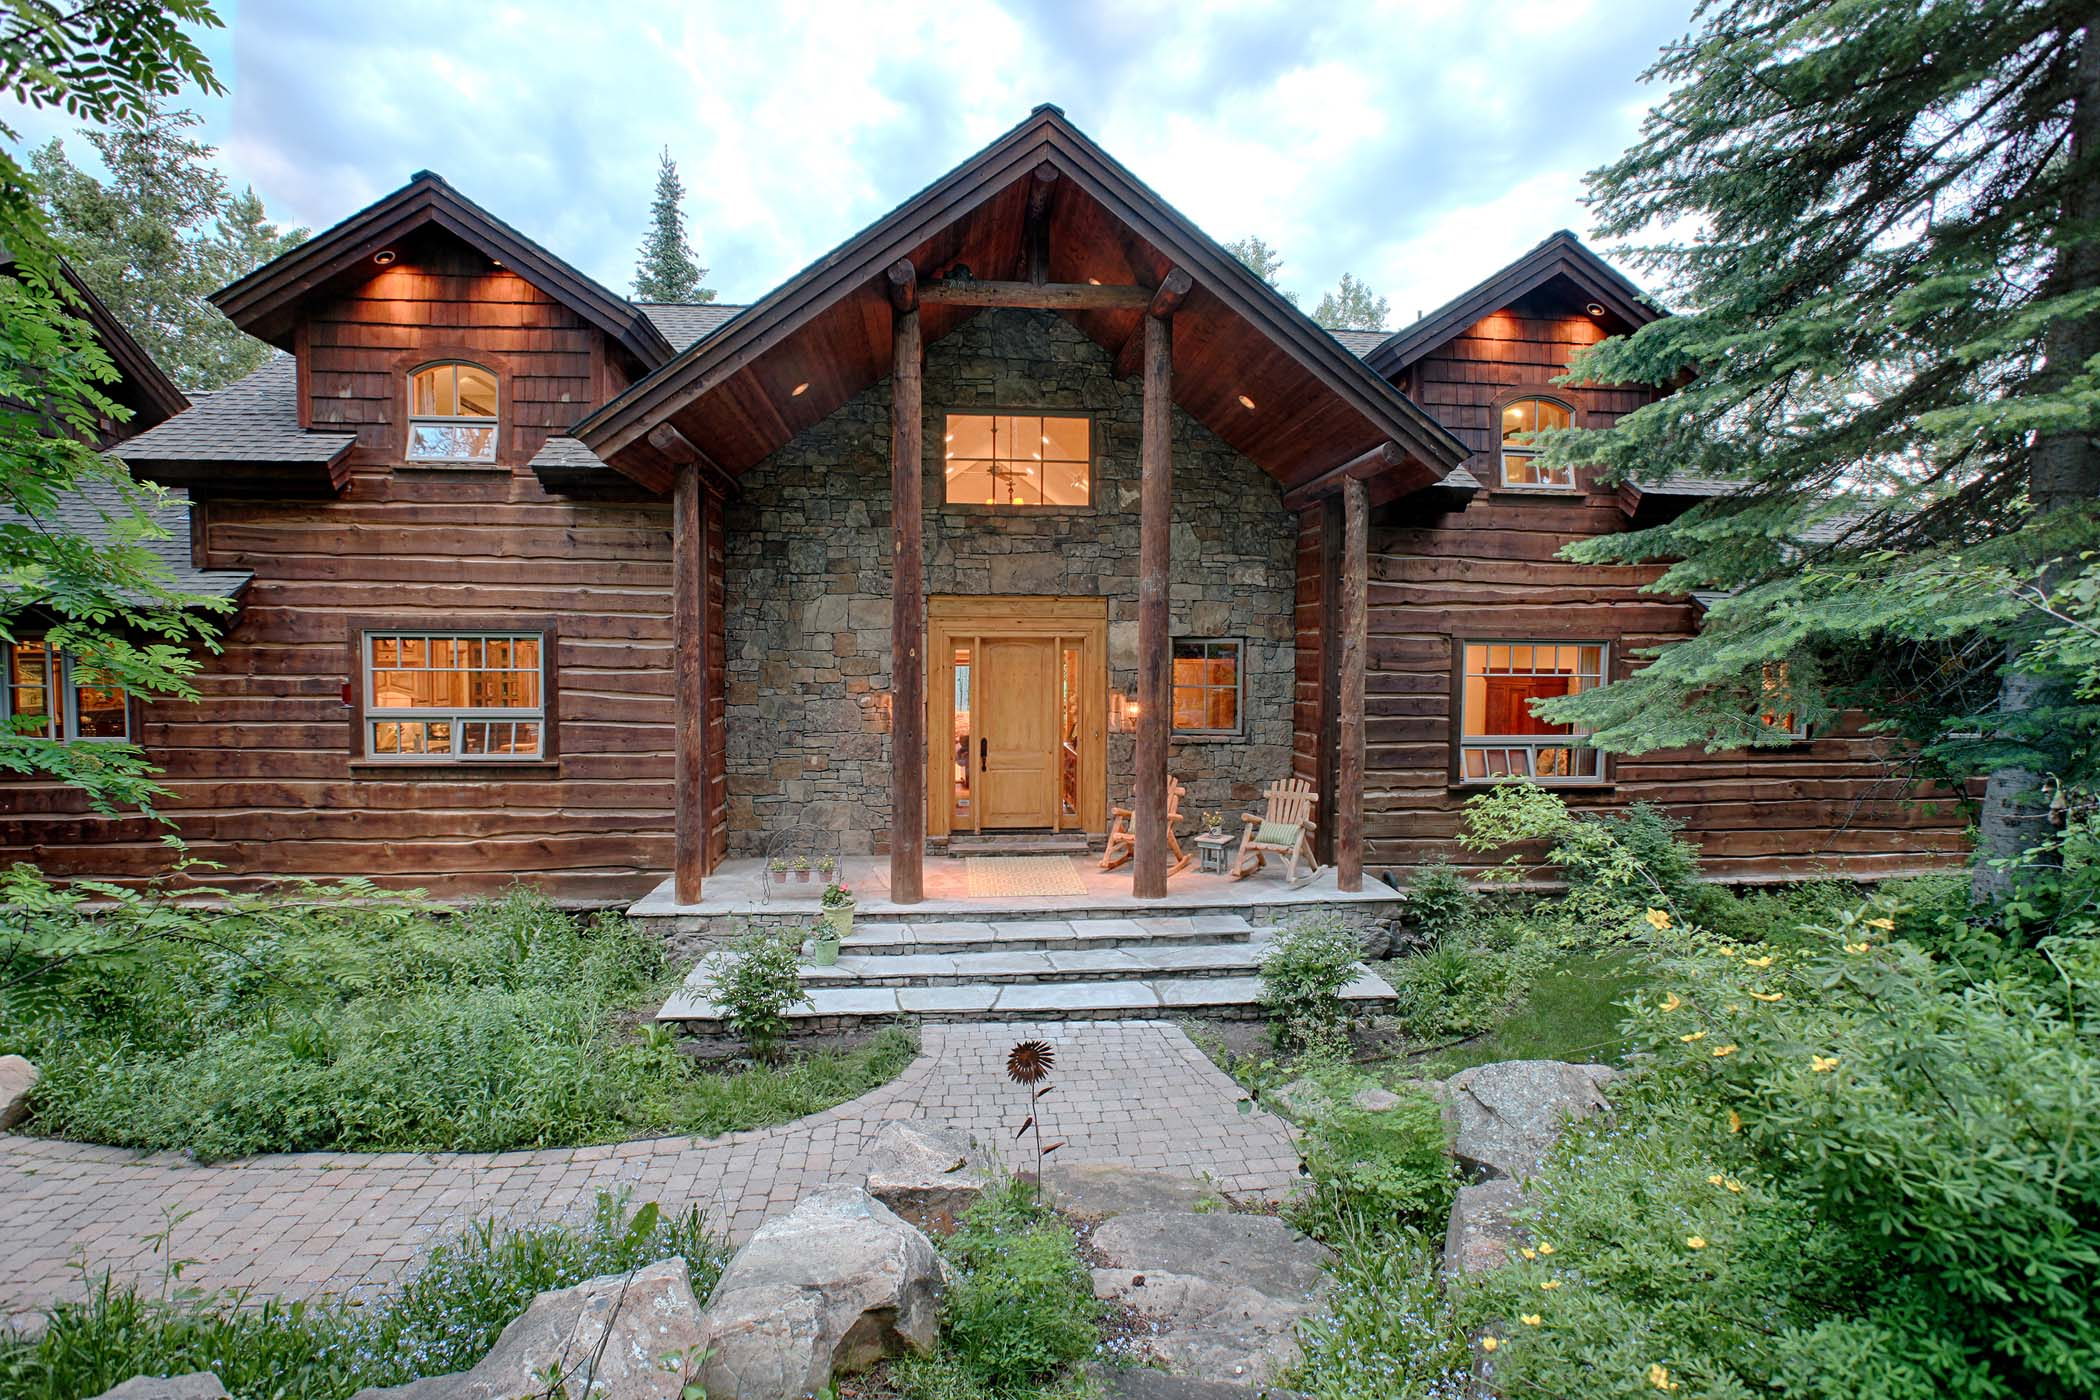 獨棟家庭住宅 為 出售 在 Secluded Mountain Home in Teton Valley 10275 Tabby Trail Victor, 愛達荷州, 83455 Jackson Hole, 美國